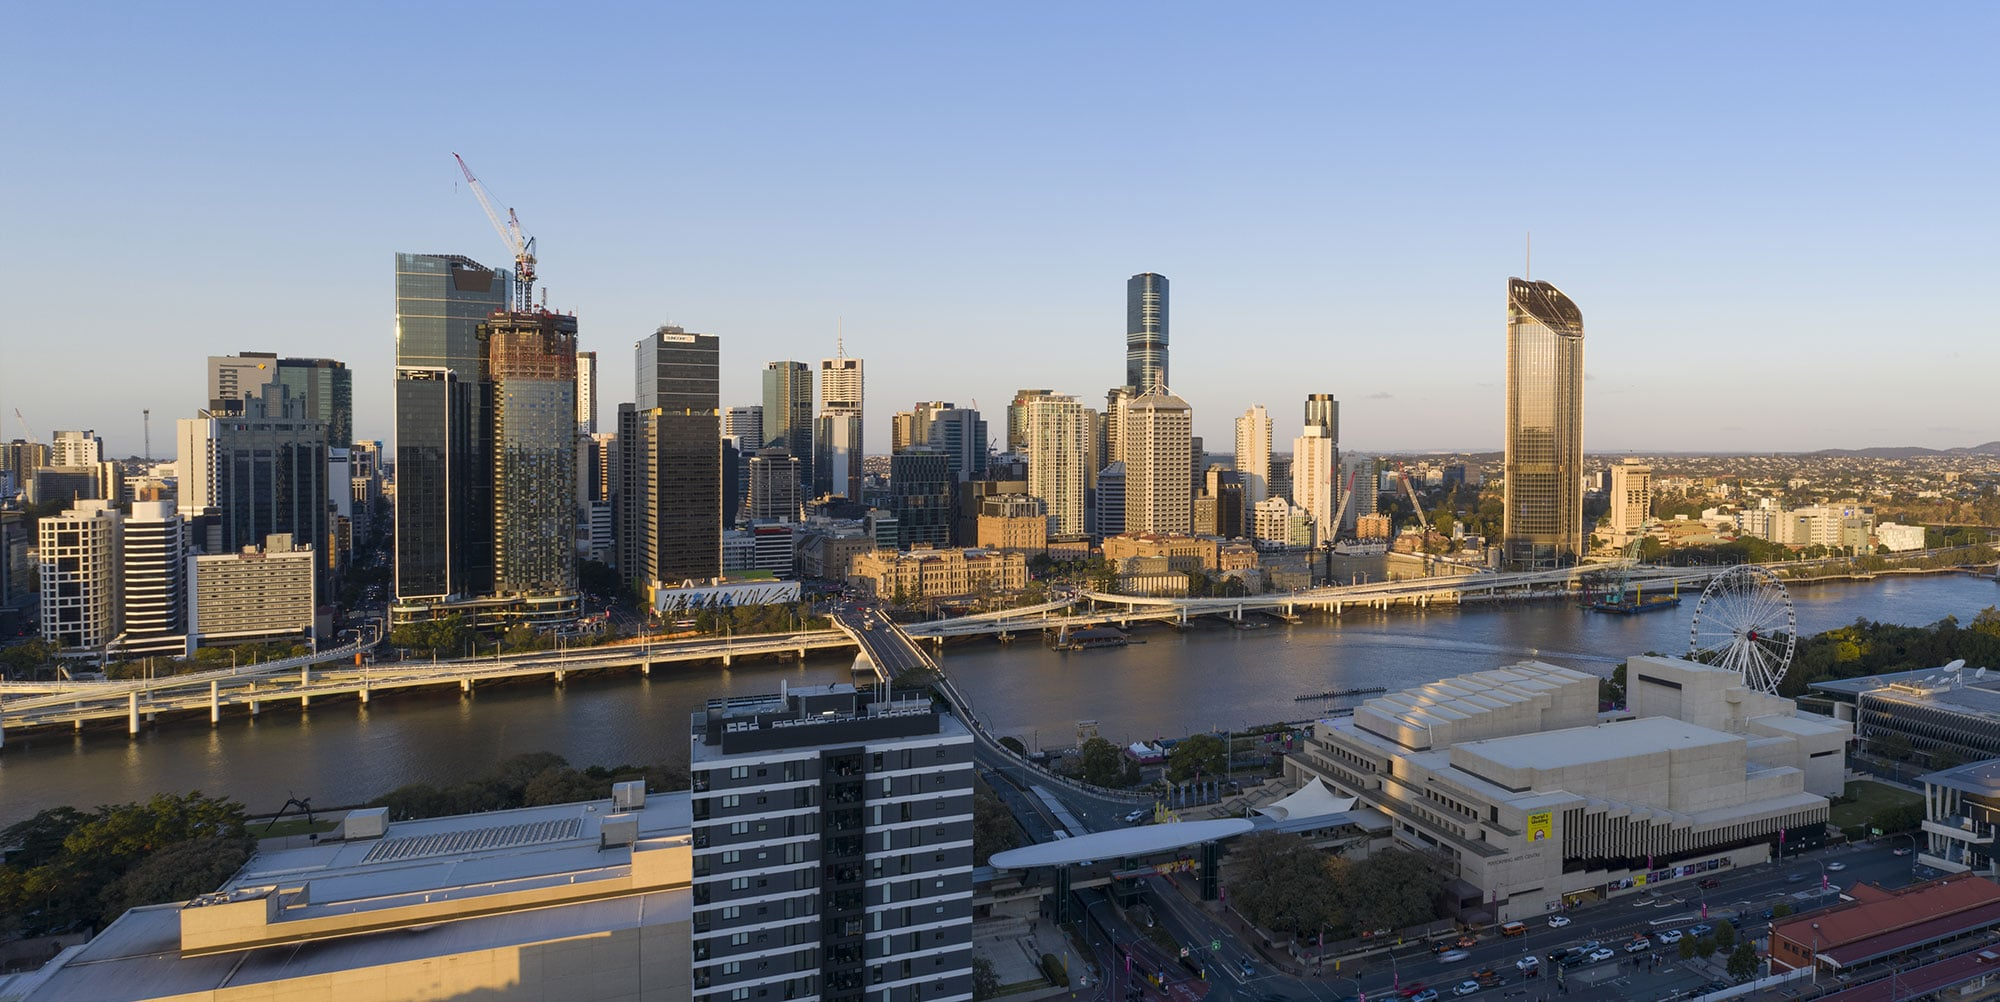 The penthouse view looking north east  - drone photography for South Brisbane apartment development 3D Render backgrounds